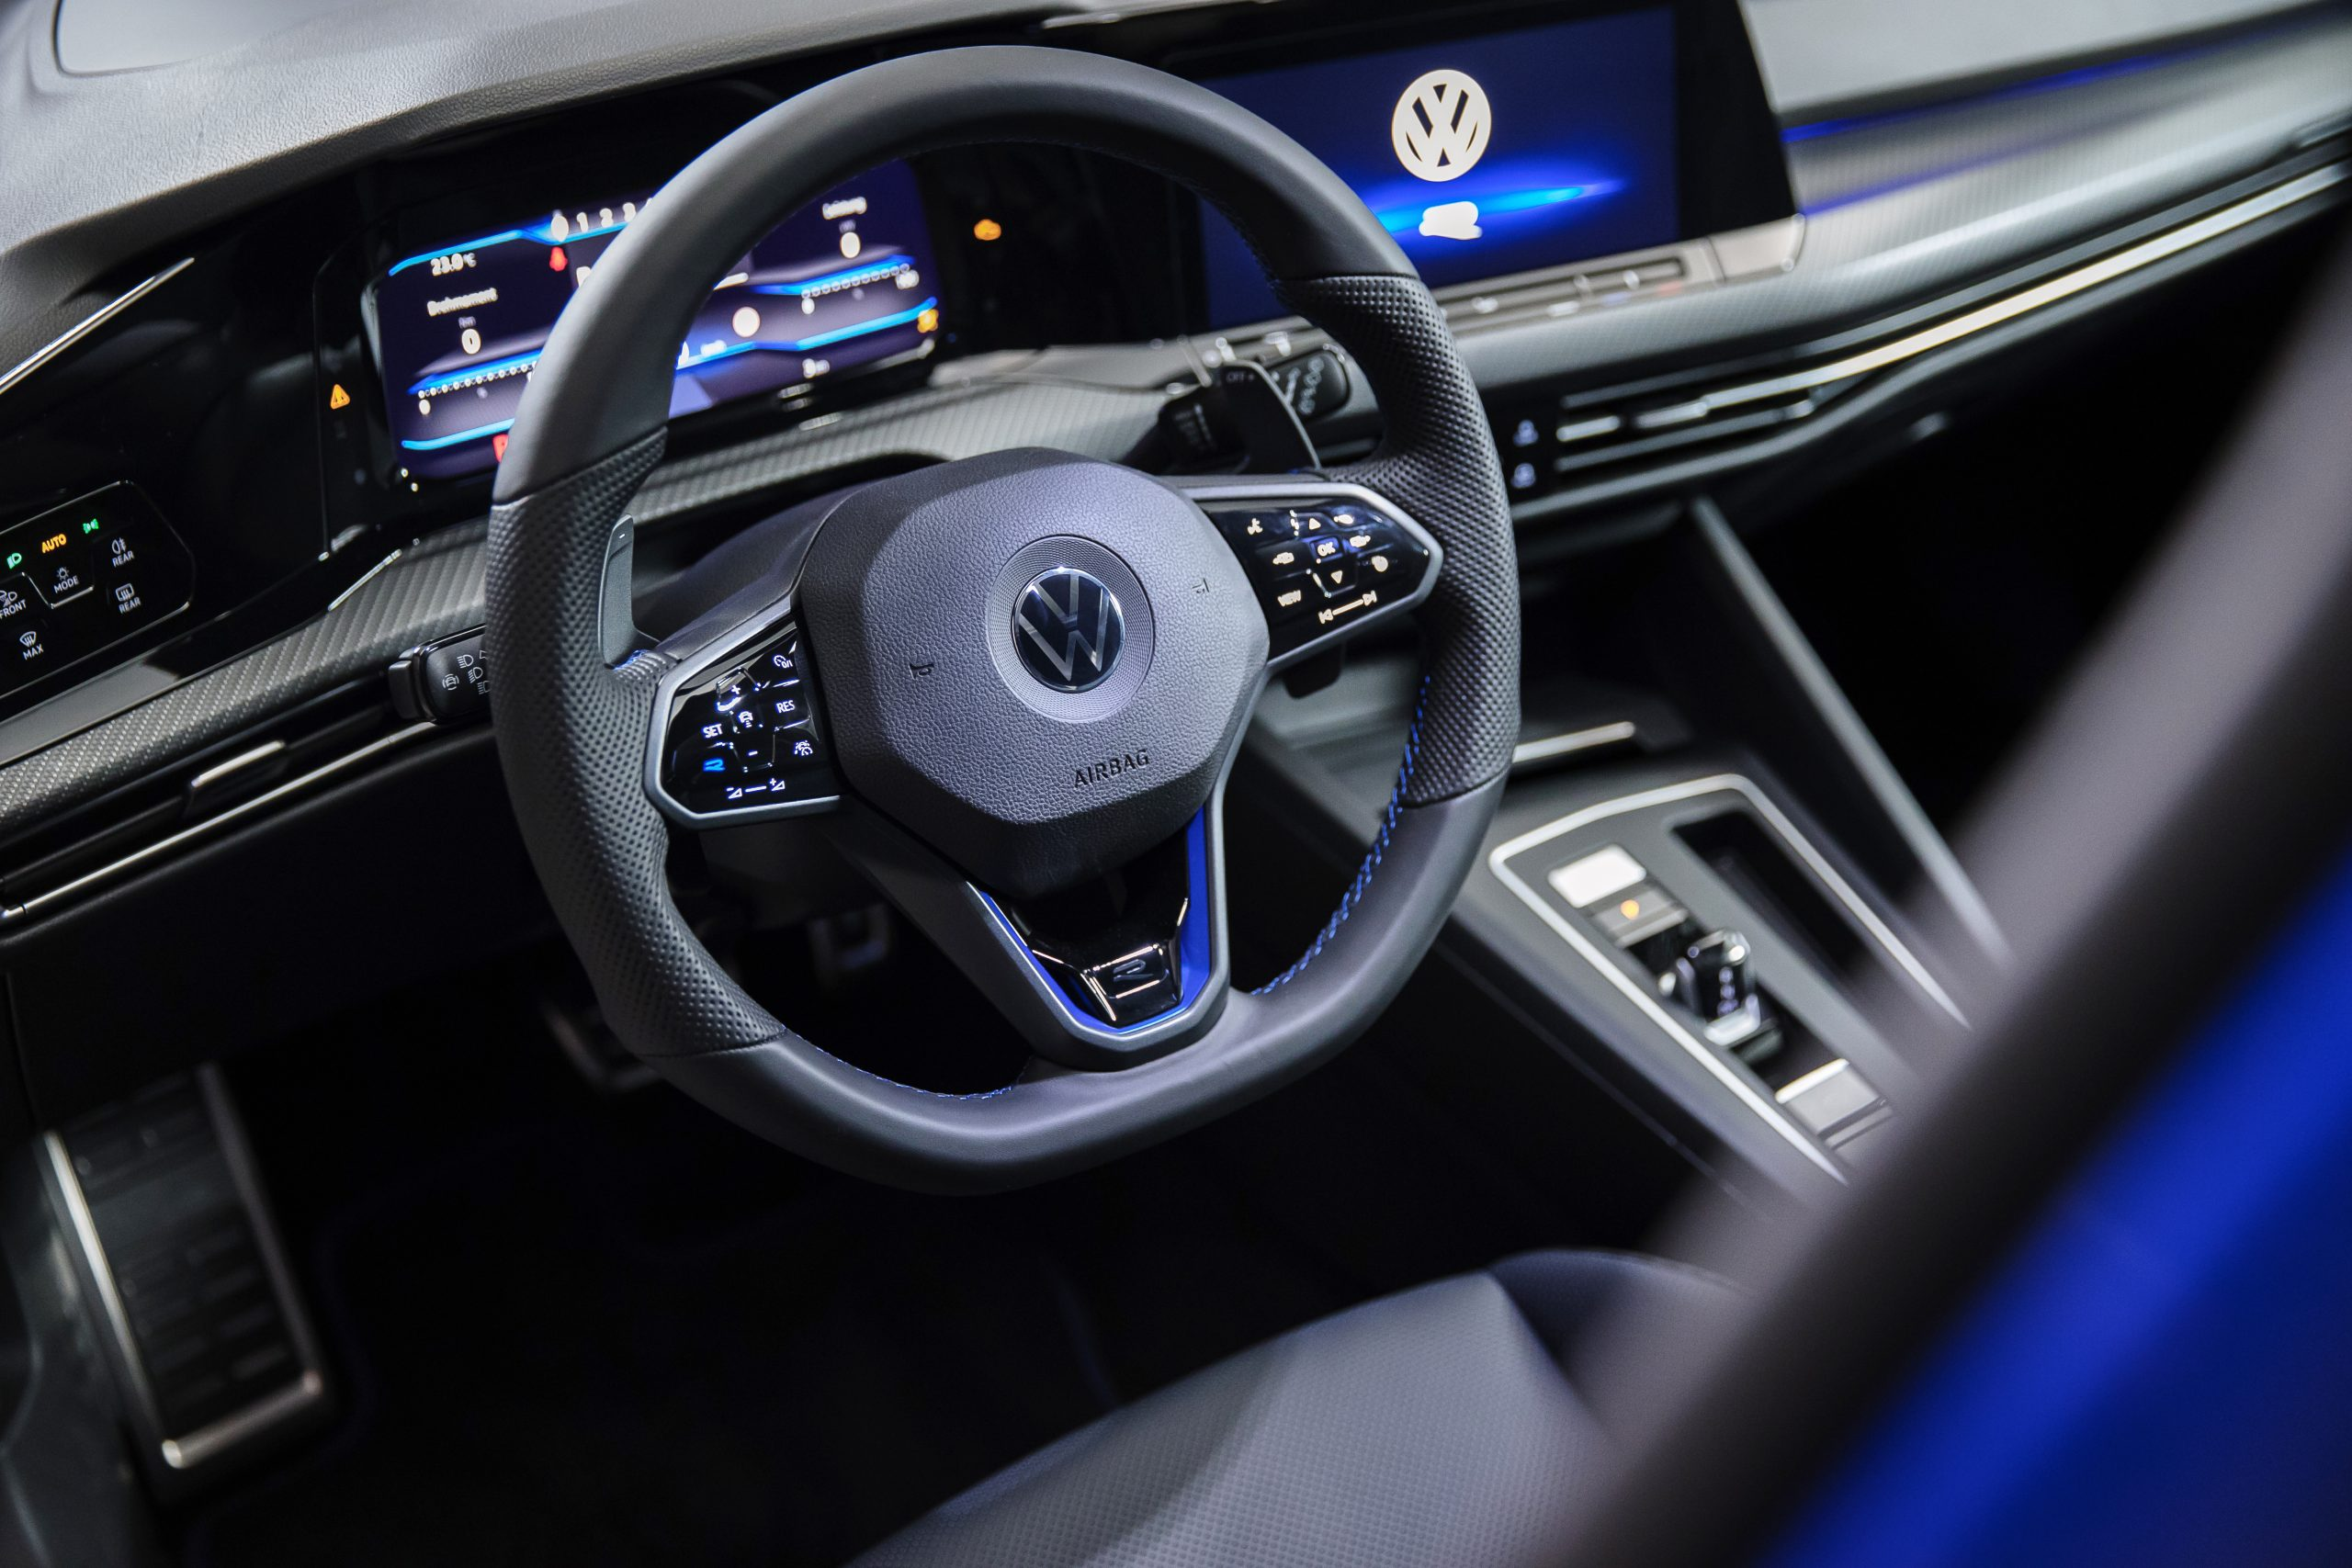 Golf R interior steering wheel detail